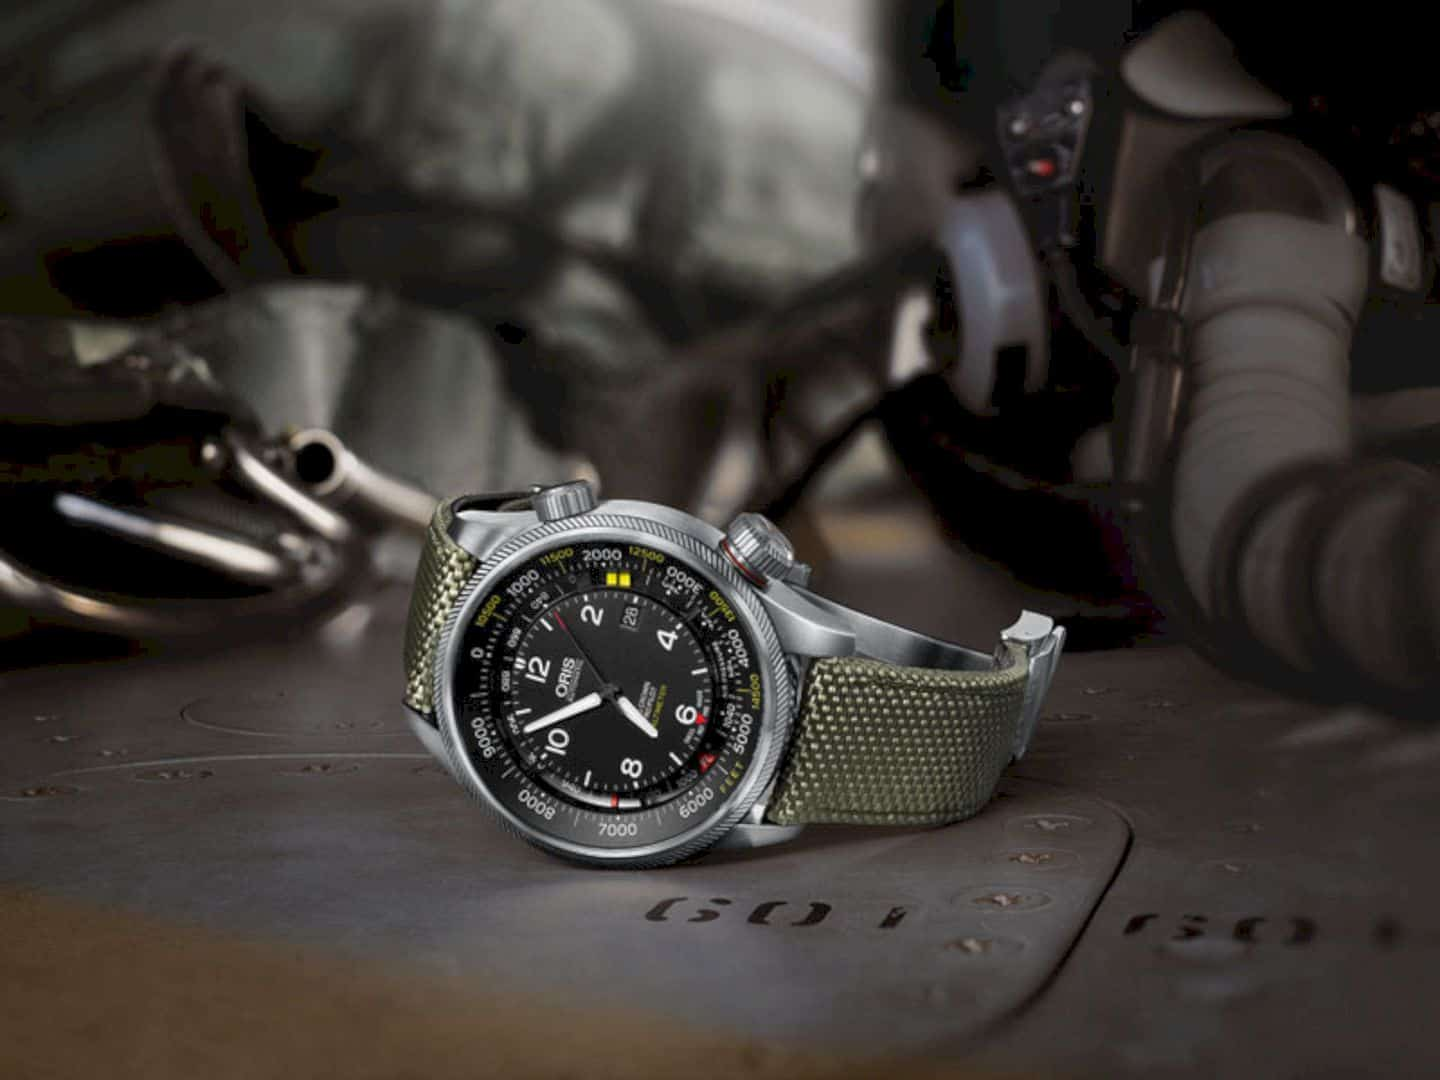 Oris Big Crown Propilot Altimeter With Feet Scale 8